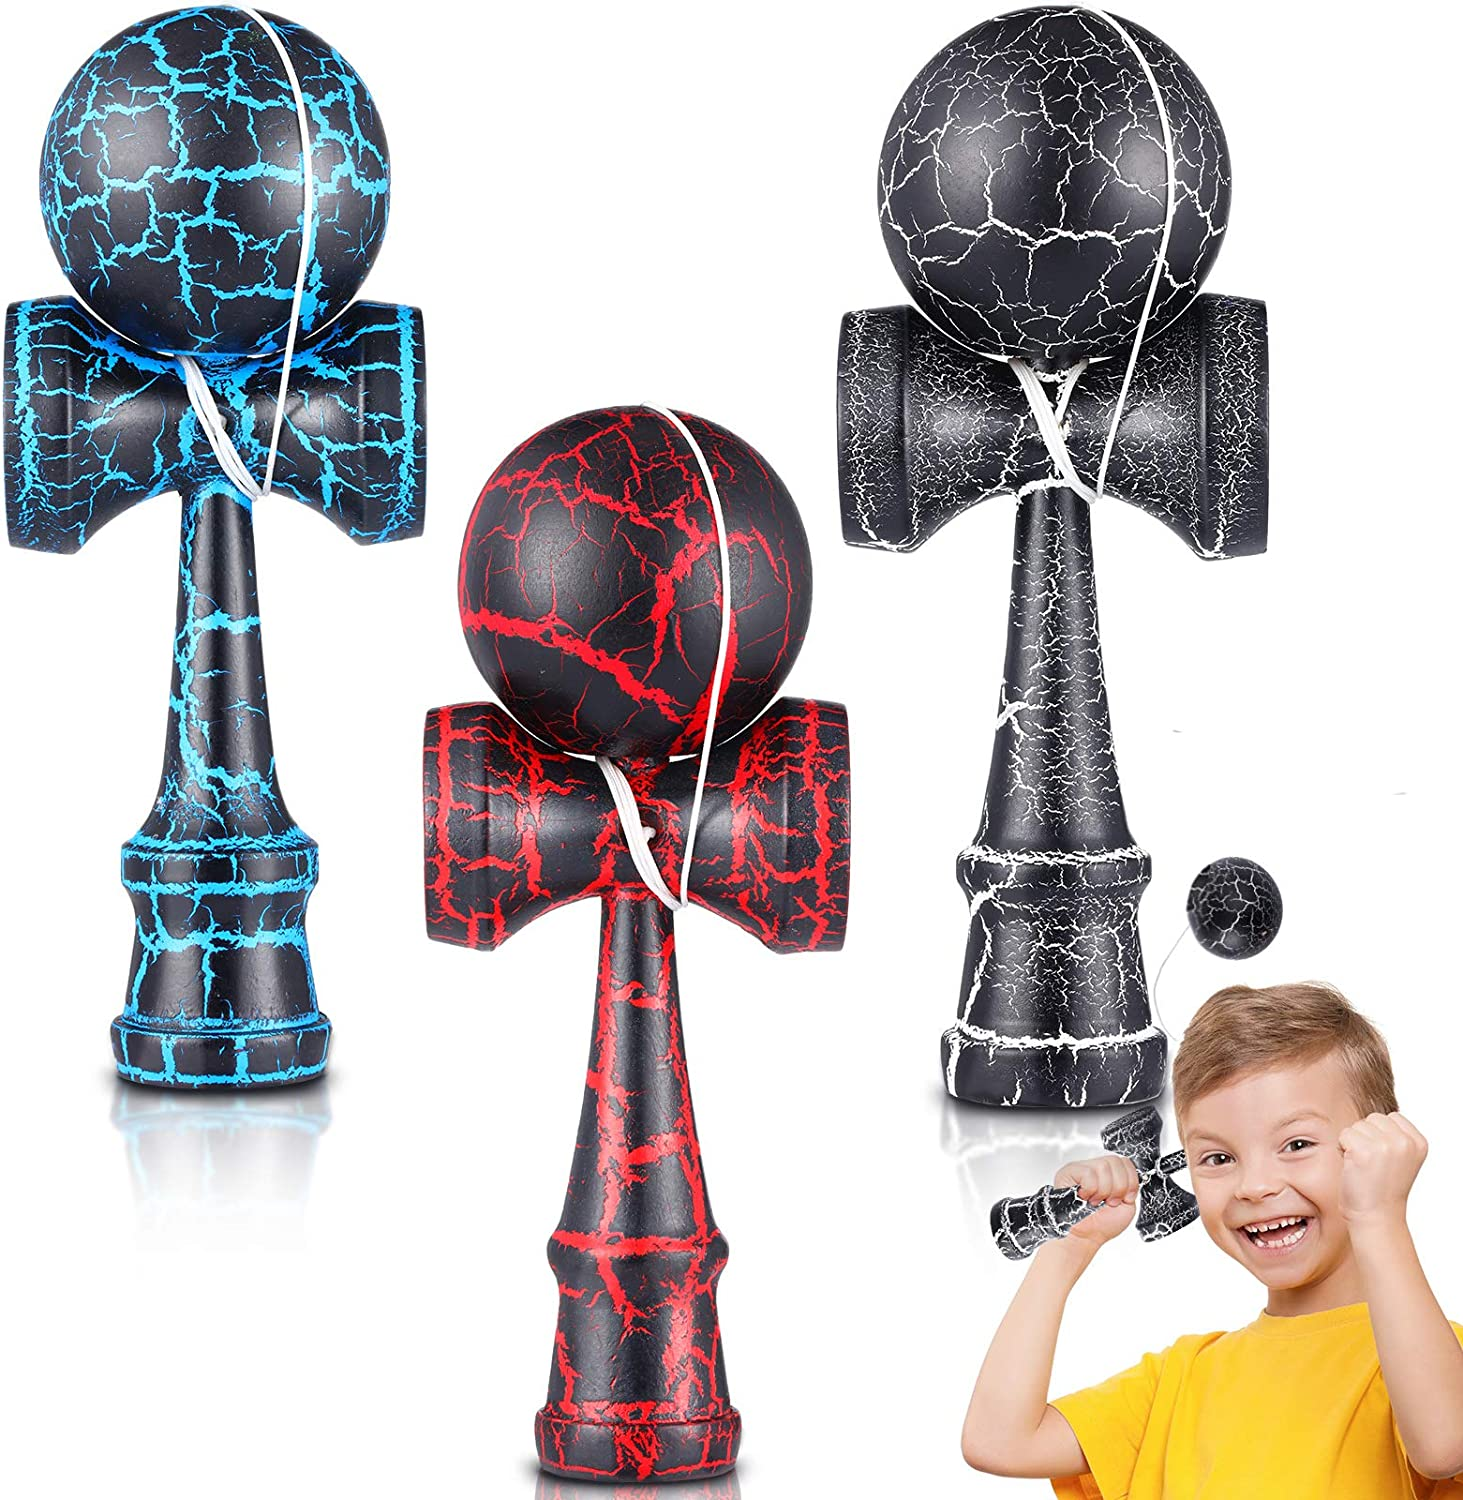 3 Pieces Crackle Kendama Wood KendamaToys with Extra String Catch Skill Toys for Adults and Teens to Enhance Hand and Eye Coordination, Black, Blue and Red